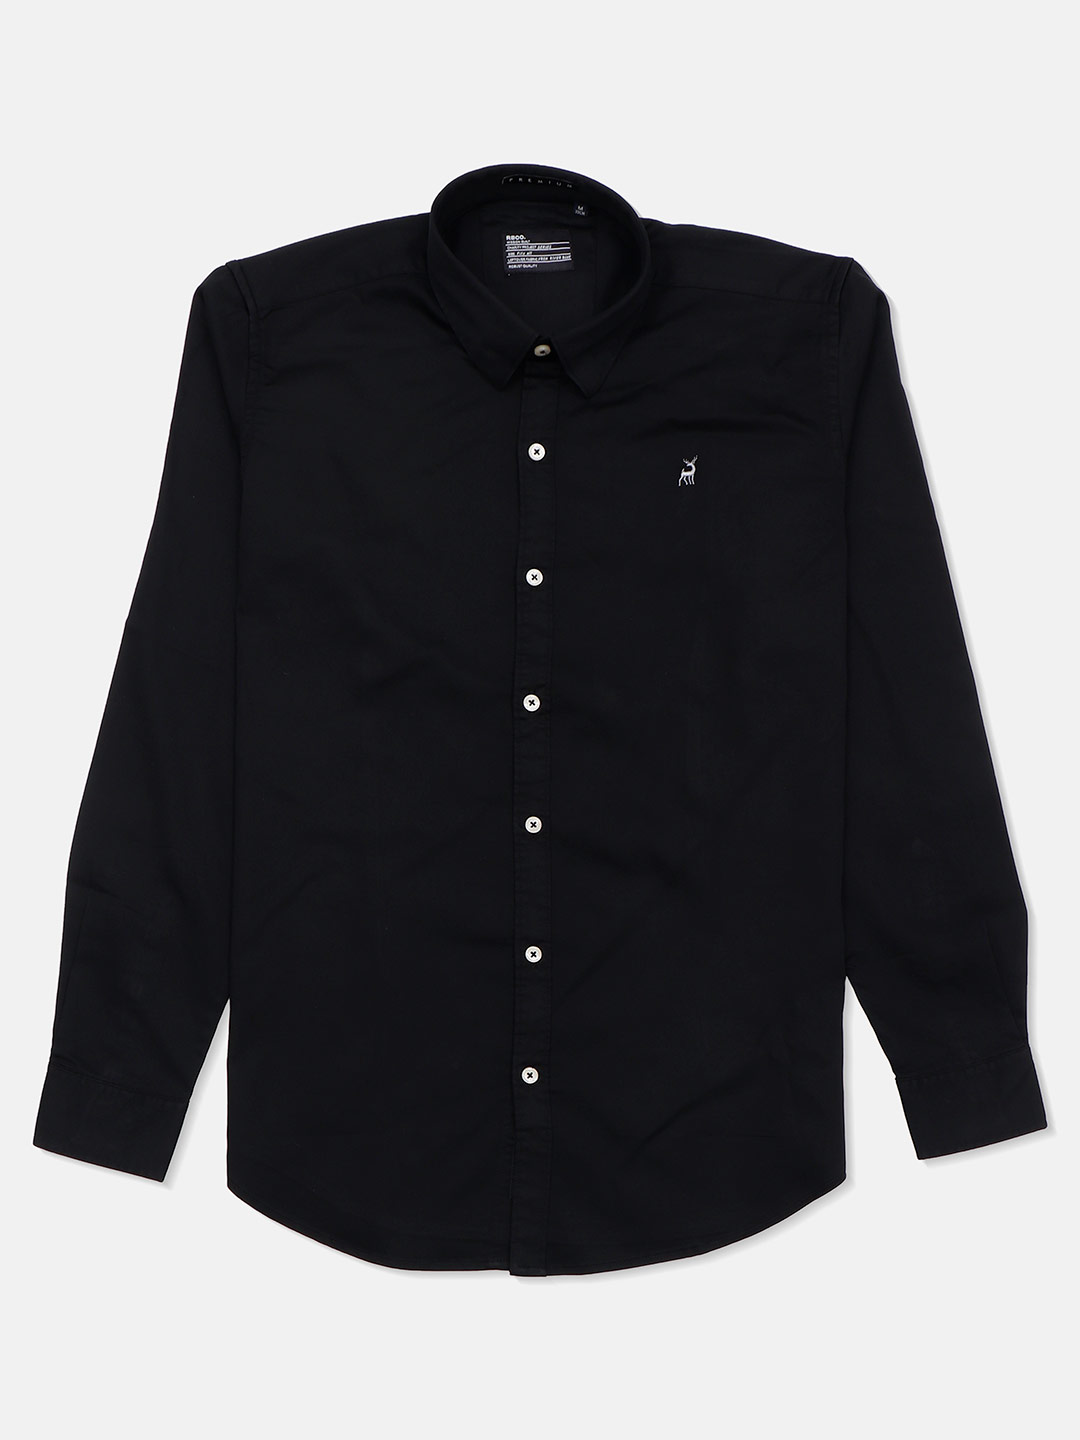 River Blue full sleeves black solid casual shirt?imgeng=w_400